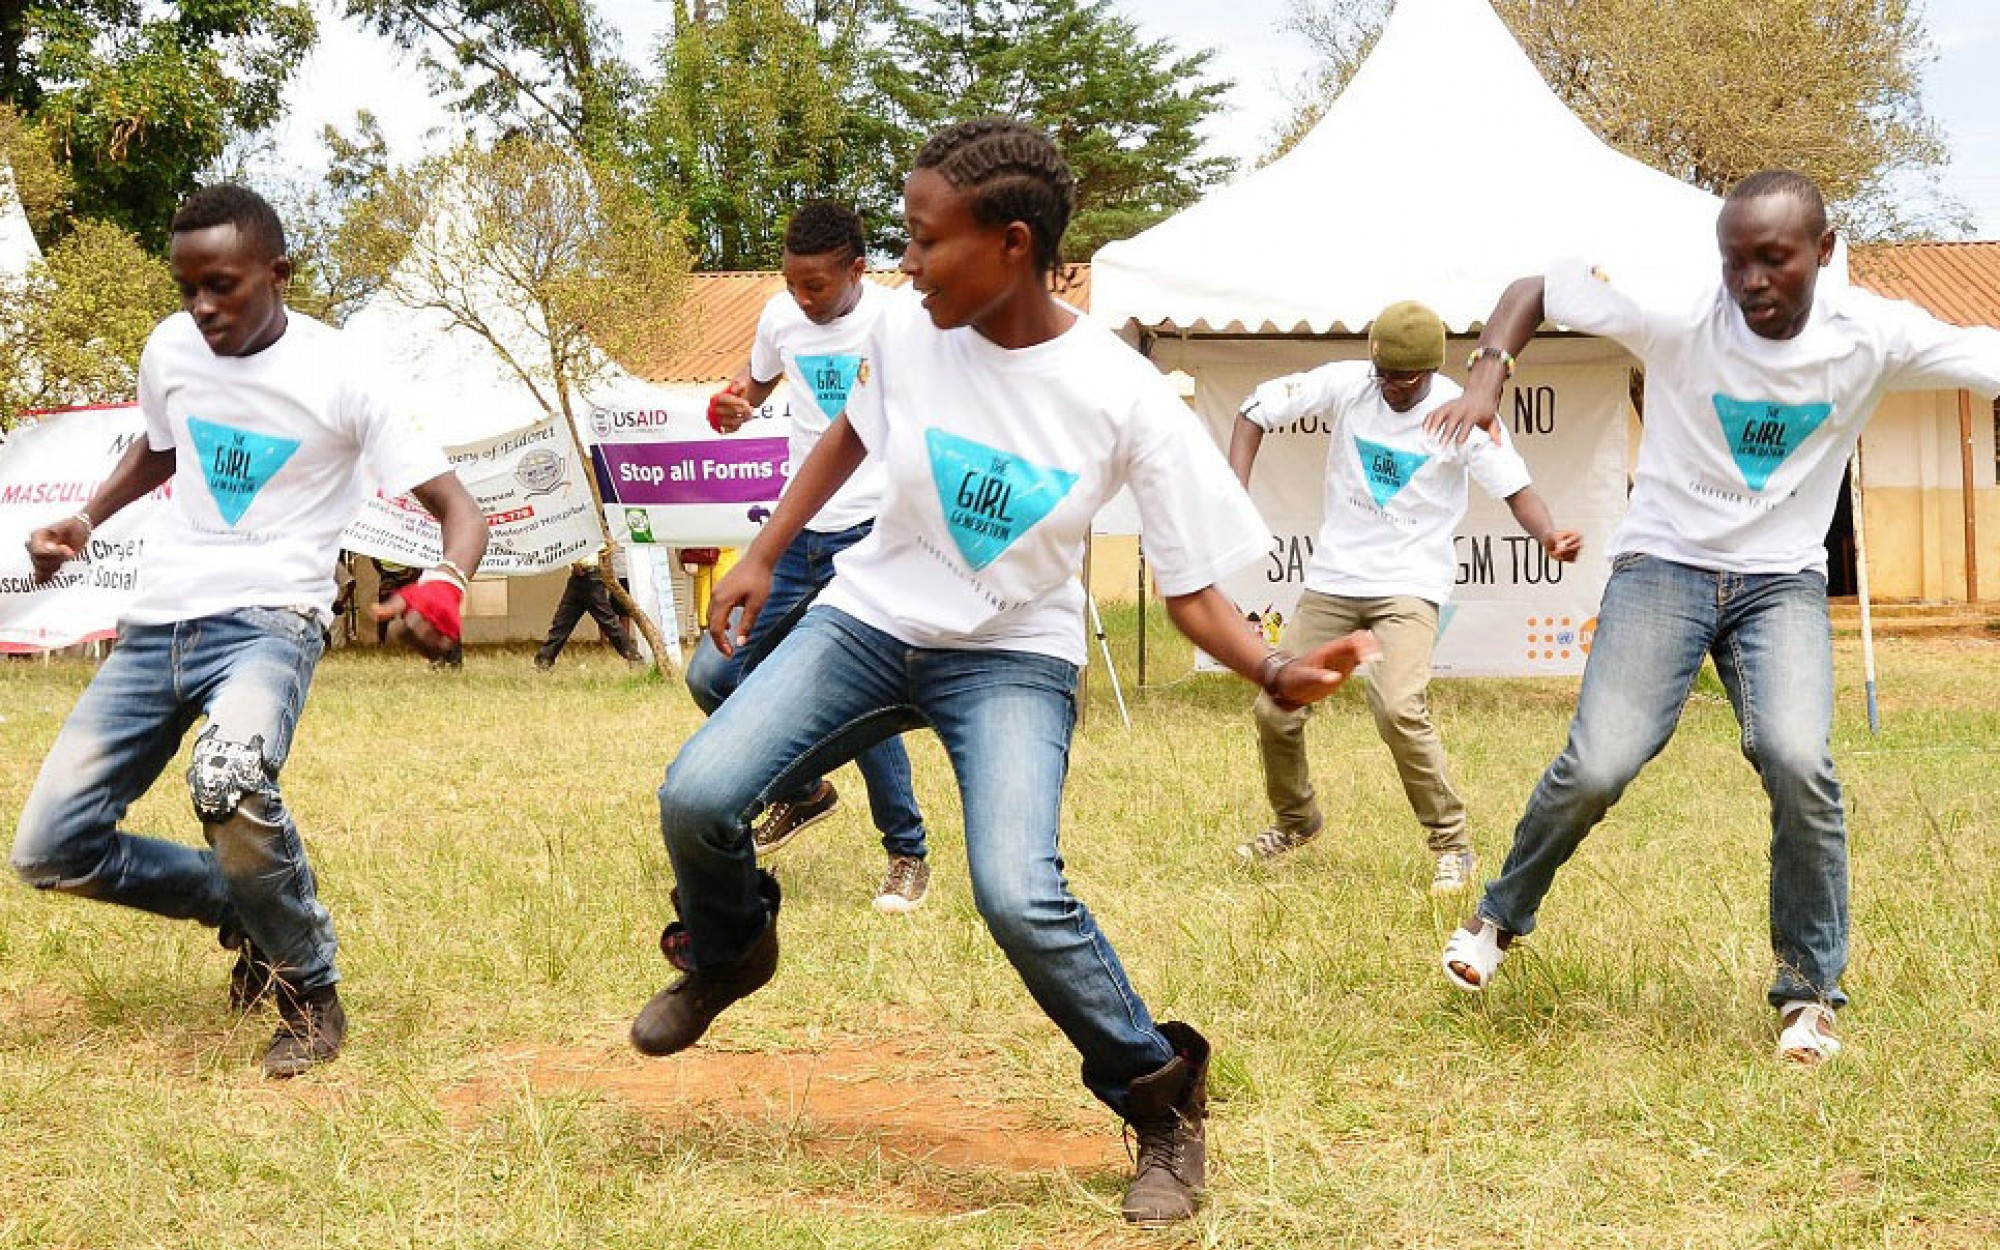 Small grants make a big difference in campaign to end FGM